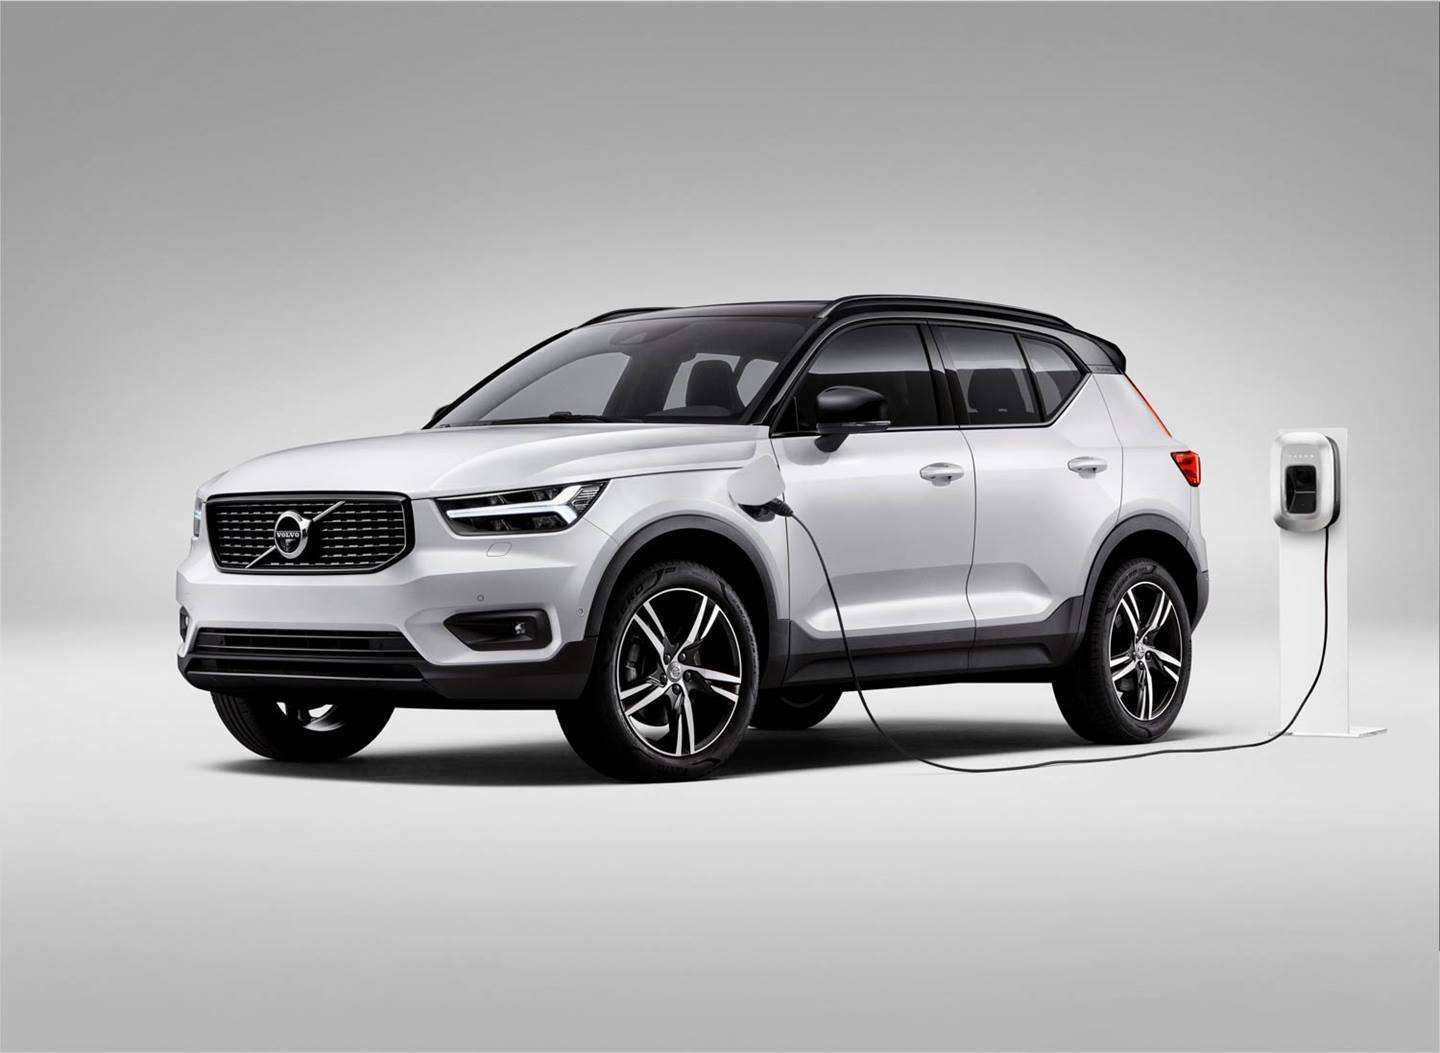 66 All New Volvo All Electric Cars By 2019 Prices